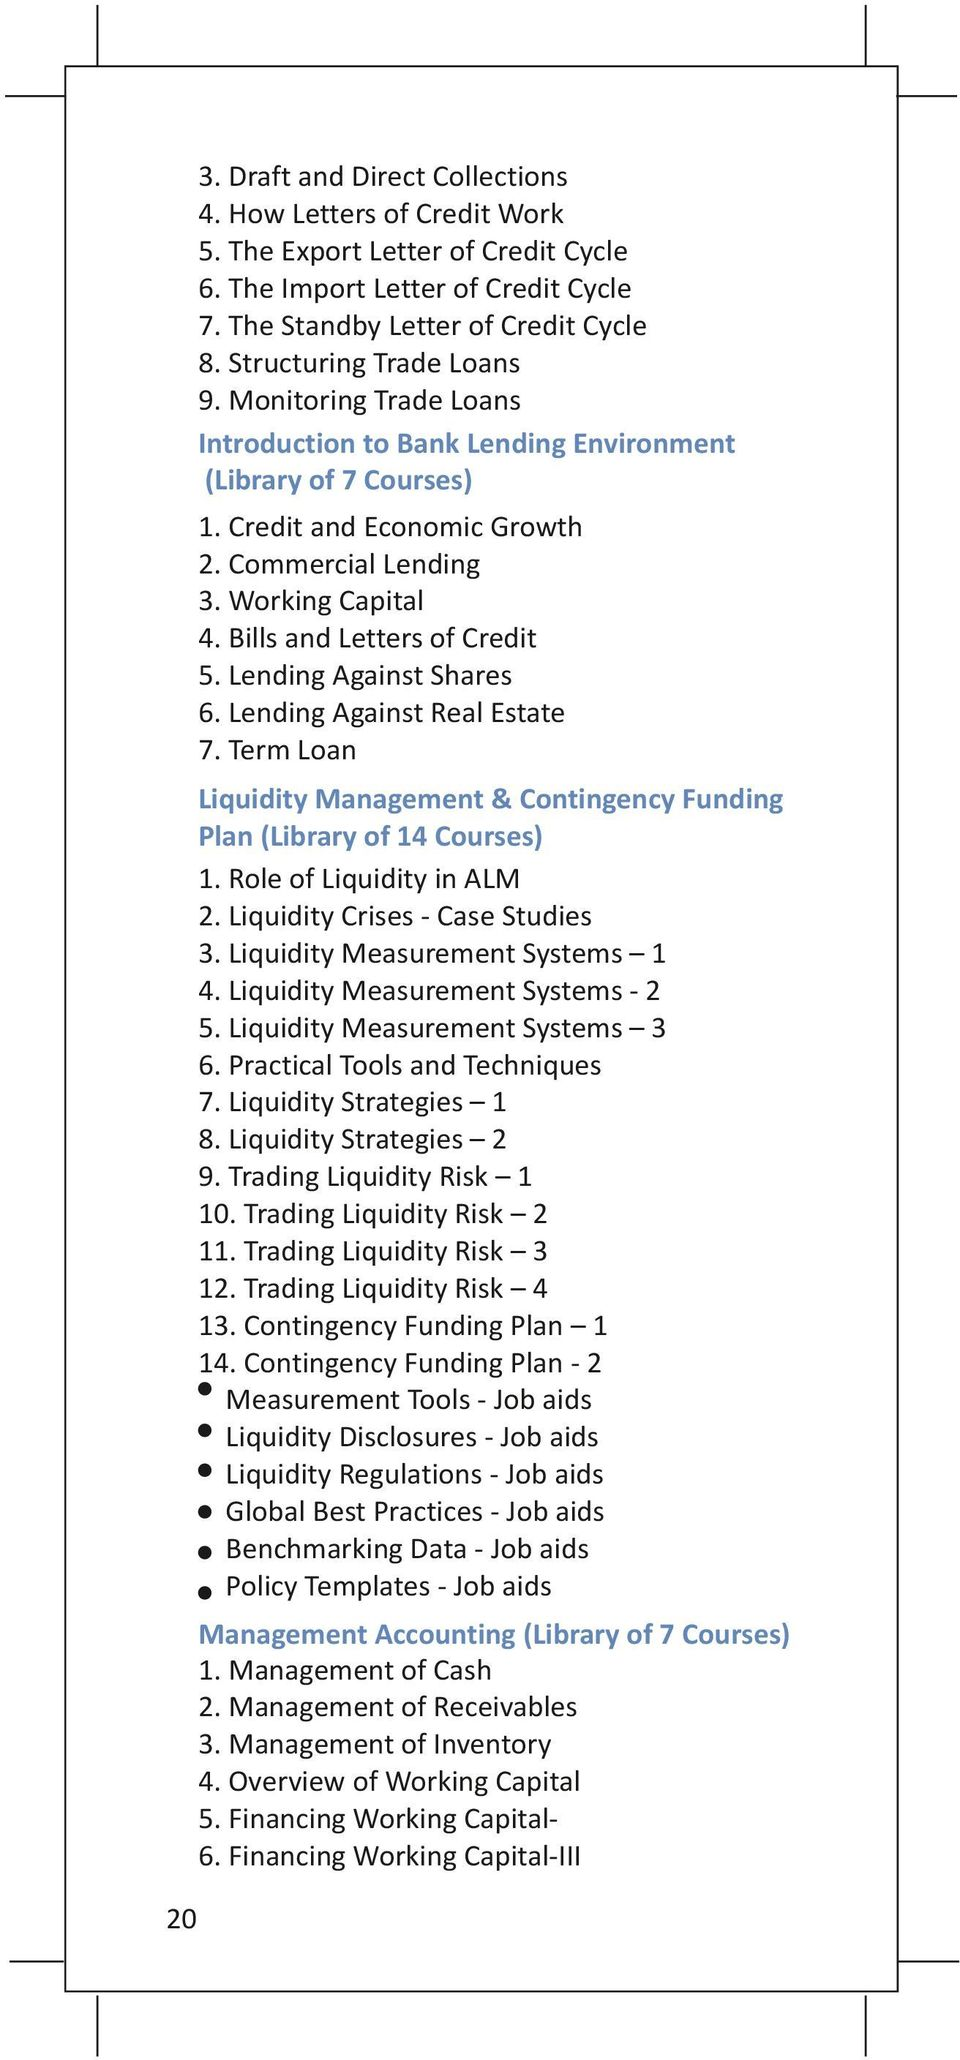 Bills and Letters of Credit 5. Lending Against Shares 6. Lending Against Real Estate 7. Term Loan Liquidity Management & Contingency Funding Plan (Library of 14 Courses) 1. Role of Liquidity in ALM 2.